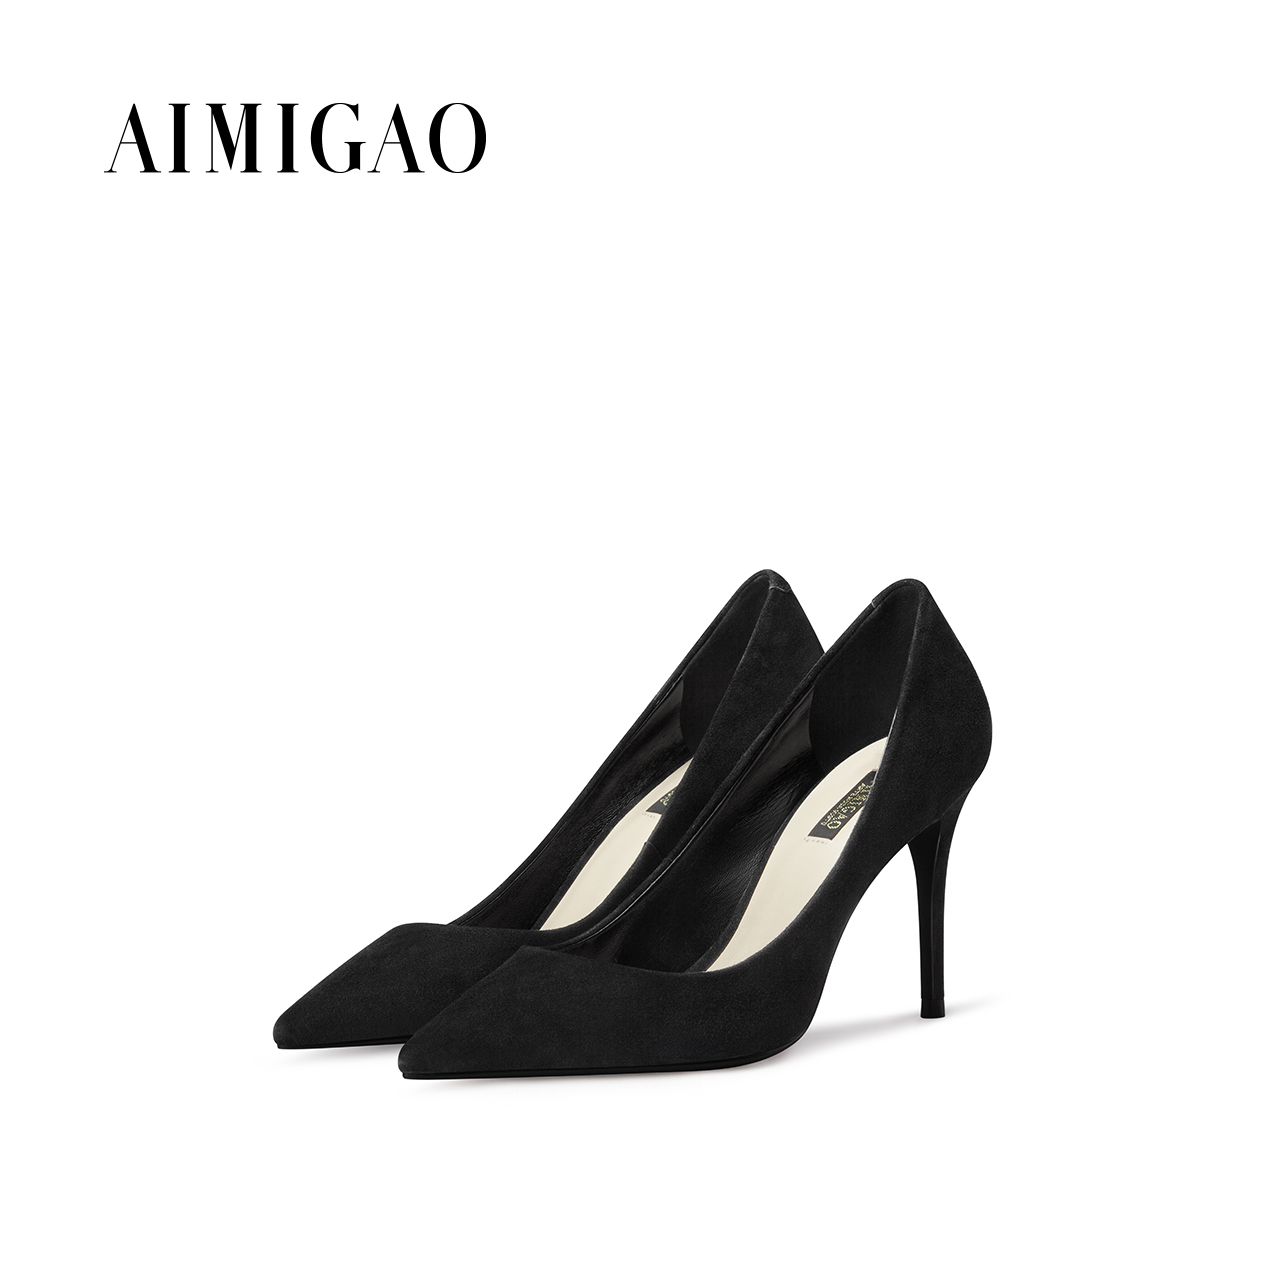 AIMIGAO Sheep Suede Classic Black women Pumps Shoes 2017 autumn shallow mouth Pointed Toe Sexy High Heels Fashion Women Shoes classic fashion women s club banquet wedding shoes sexy suede zipper 17 cm in stiletto heels